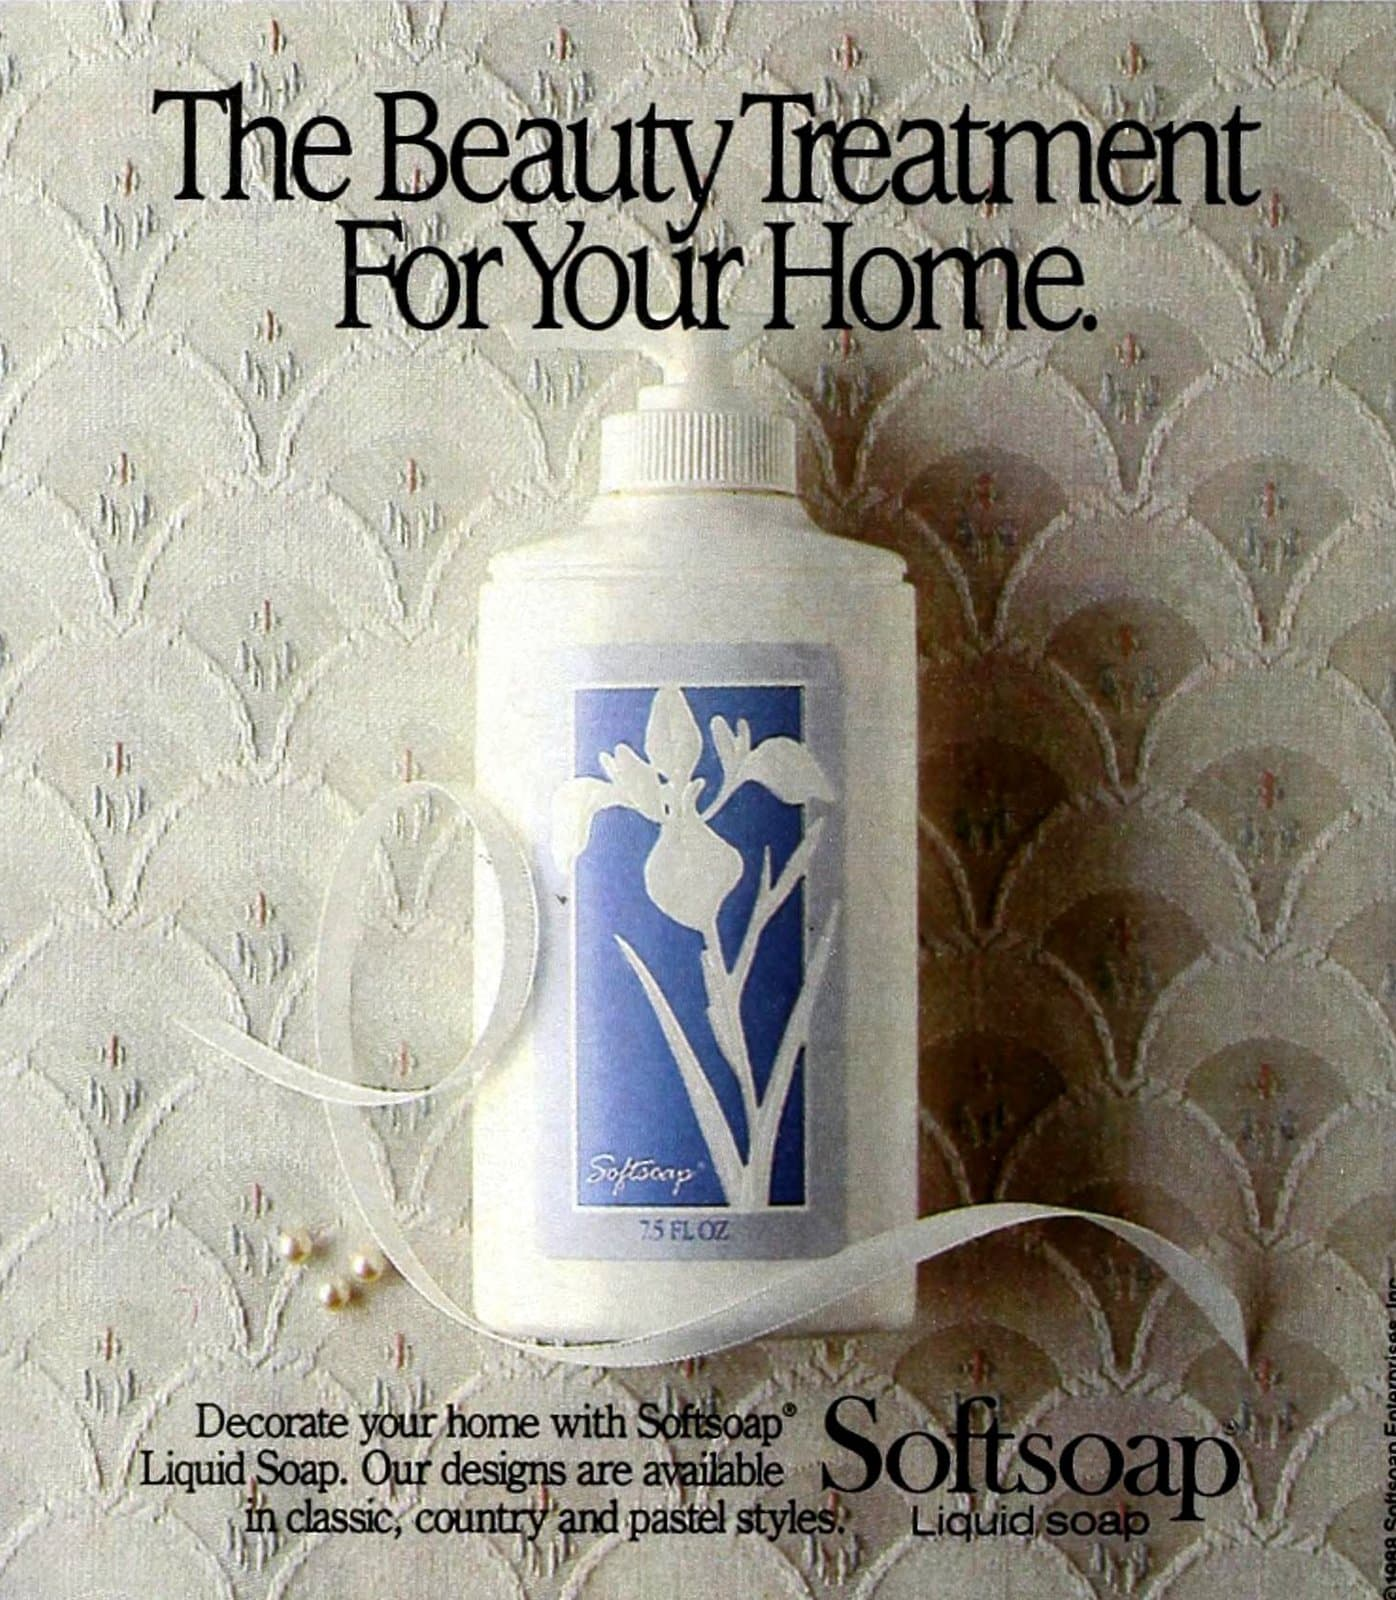 Softsoap decorator containers (1988)